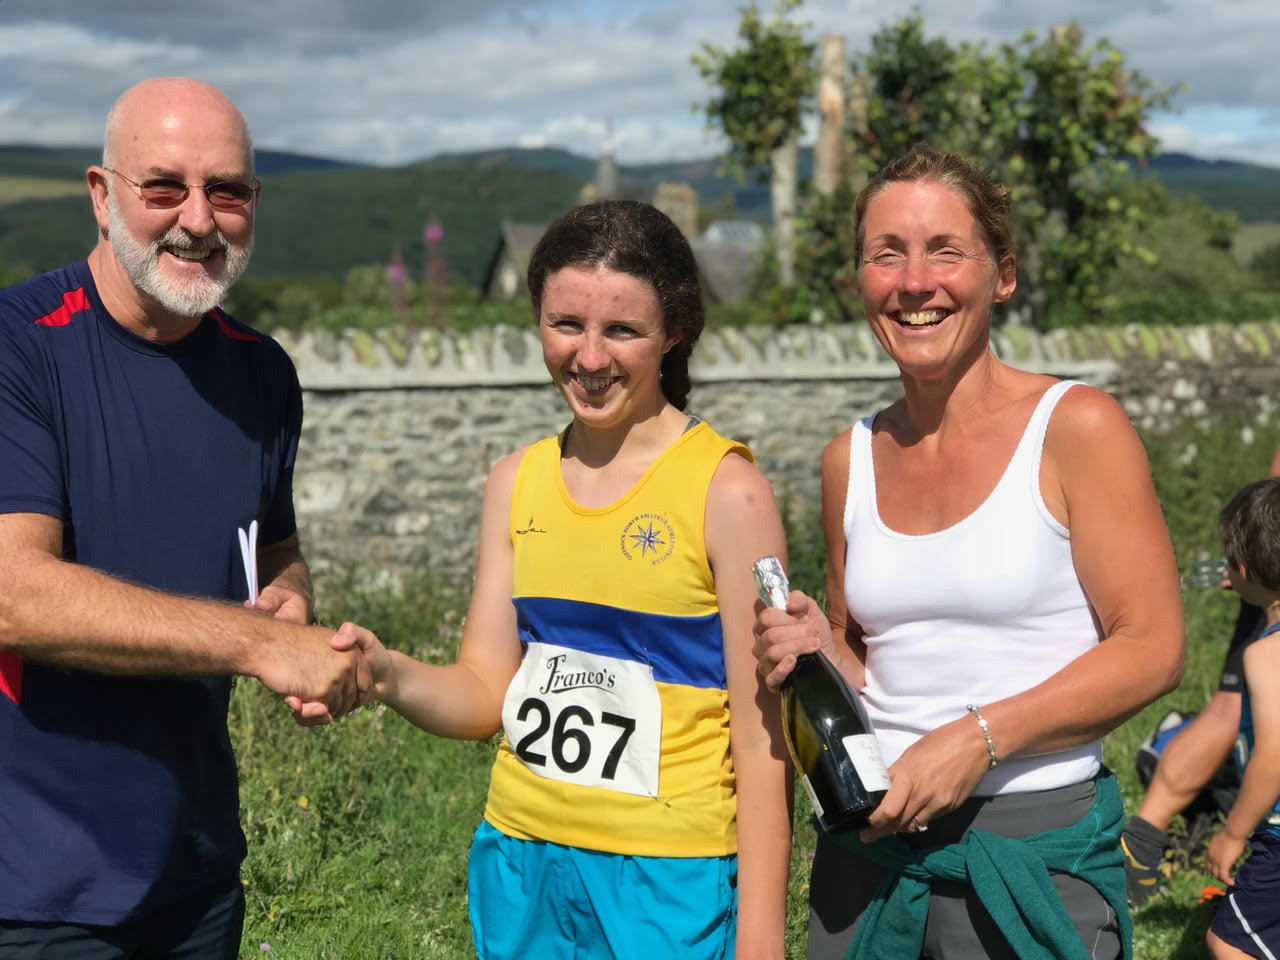 Rhona Mowat and her mum collect the prize from race organiser Gregor Nicholson